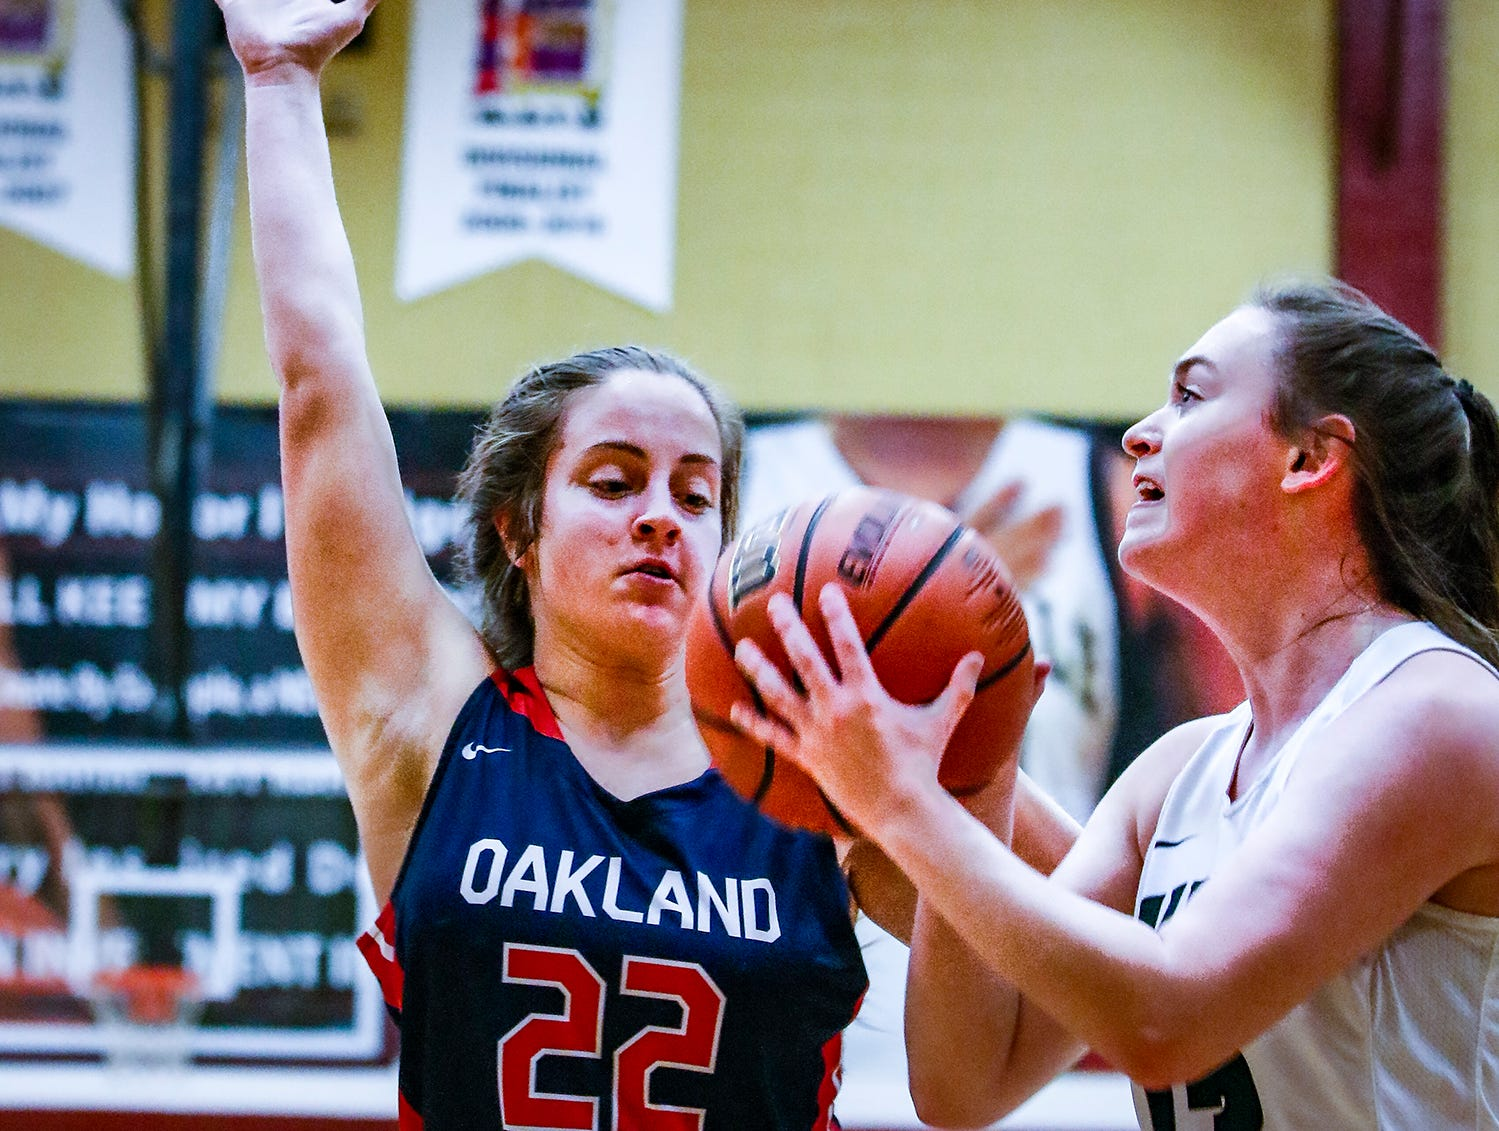 Oakland's Taylor Morton defends Webb's Emma Marlon Thursday at the State Farm Classic.